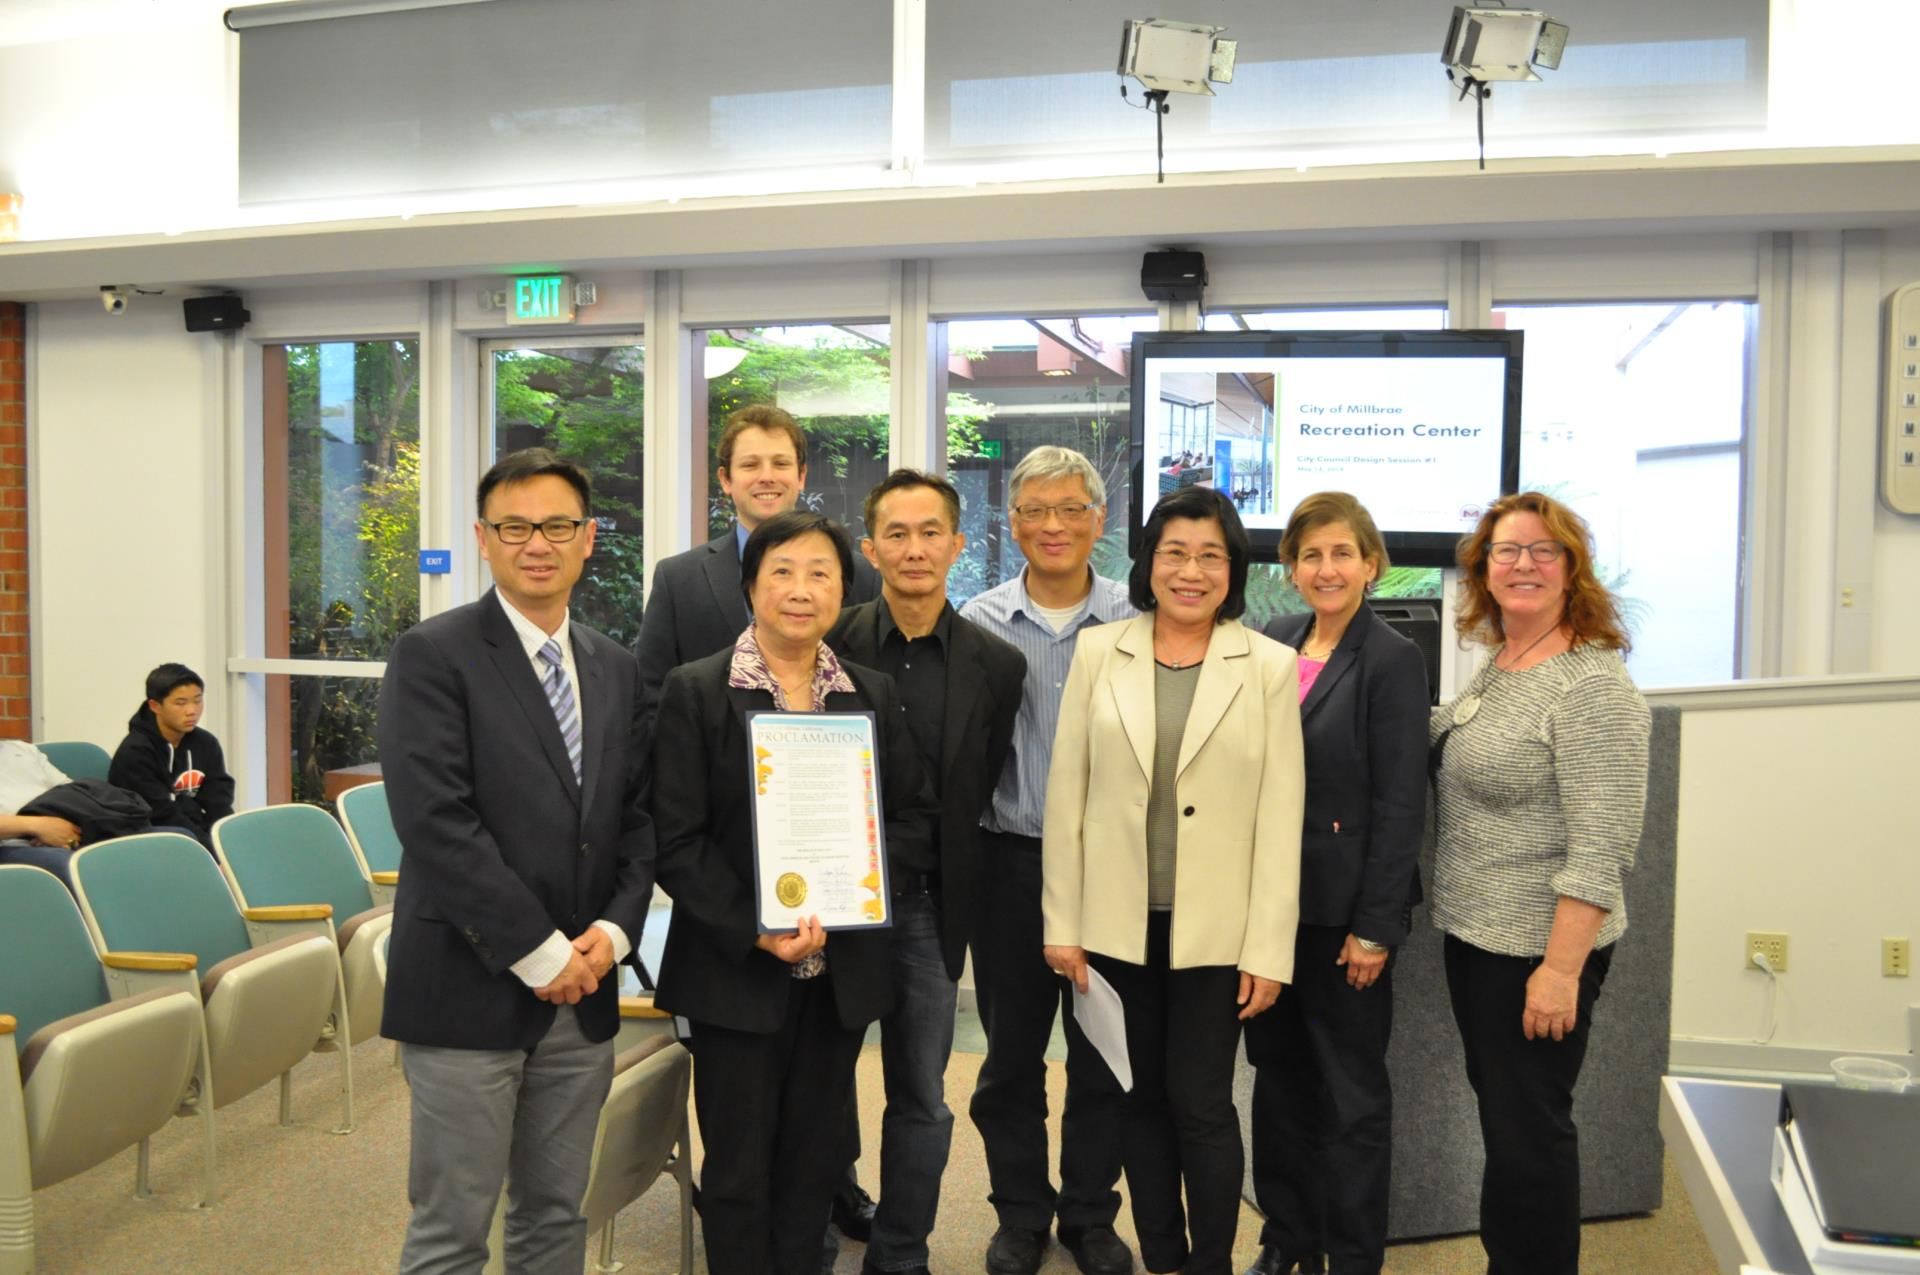 The City Council presented a proclamation recognizing the month of May as Asian American and Pacific Islander Heritage Month.